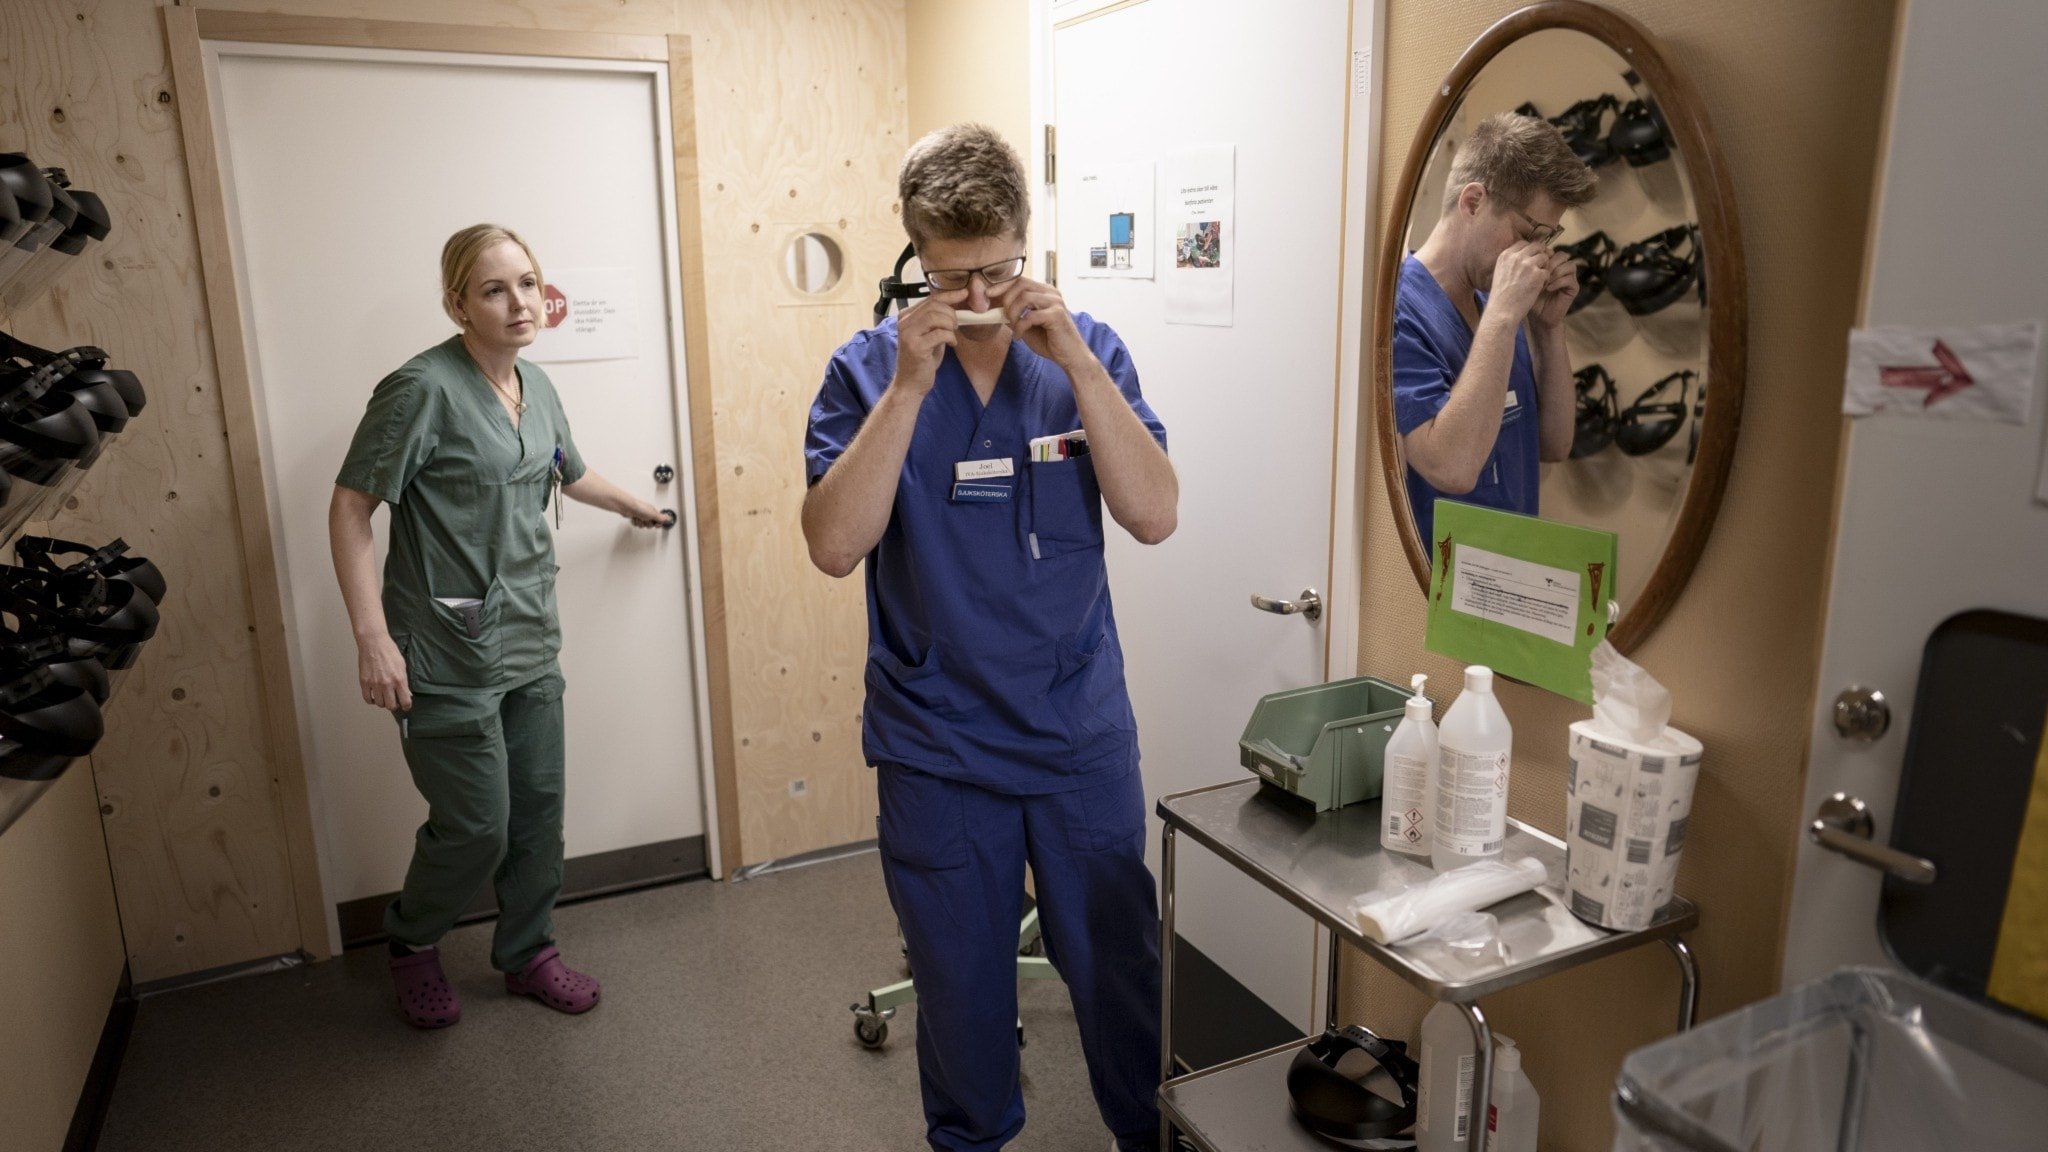 A person wearing green scrubs has her hand on a doorknob, while a person wearing blue scrubs is reflected in a mirror.